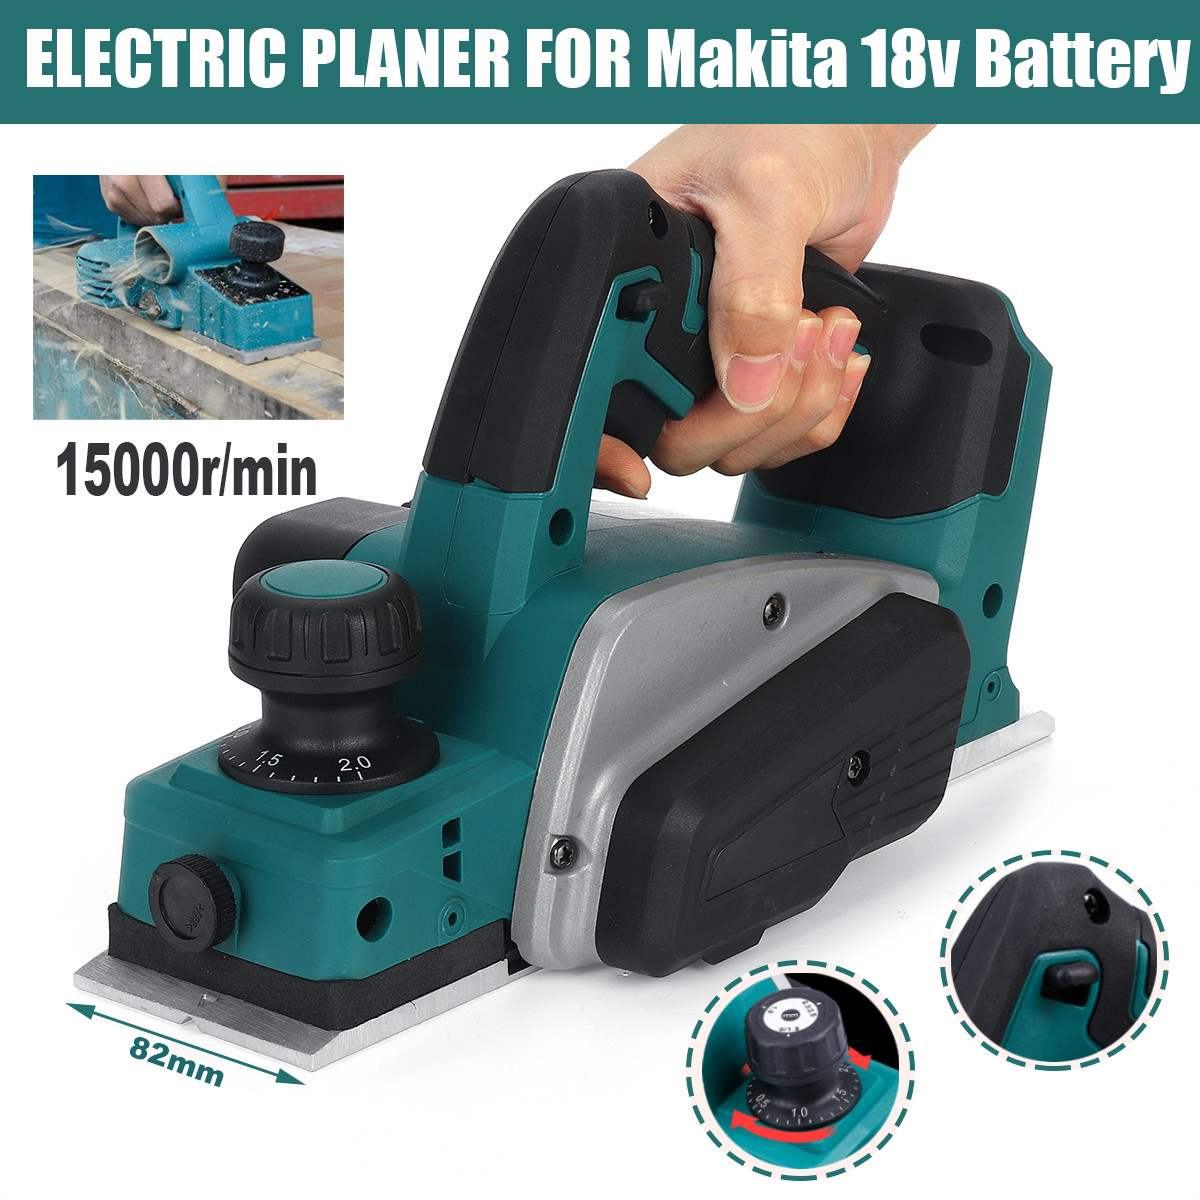 18V 15000rpm Rechargeable Electric Planer Cordless Handheld for Makita 18V Battery Woodworking Cutting Power Tool with Wrench